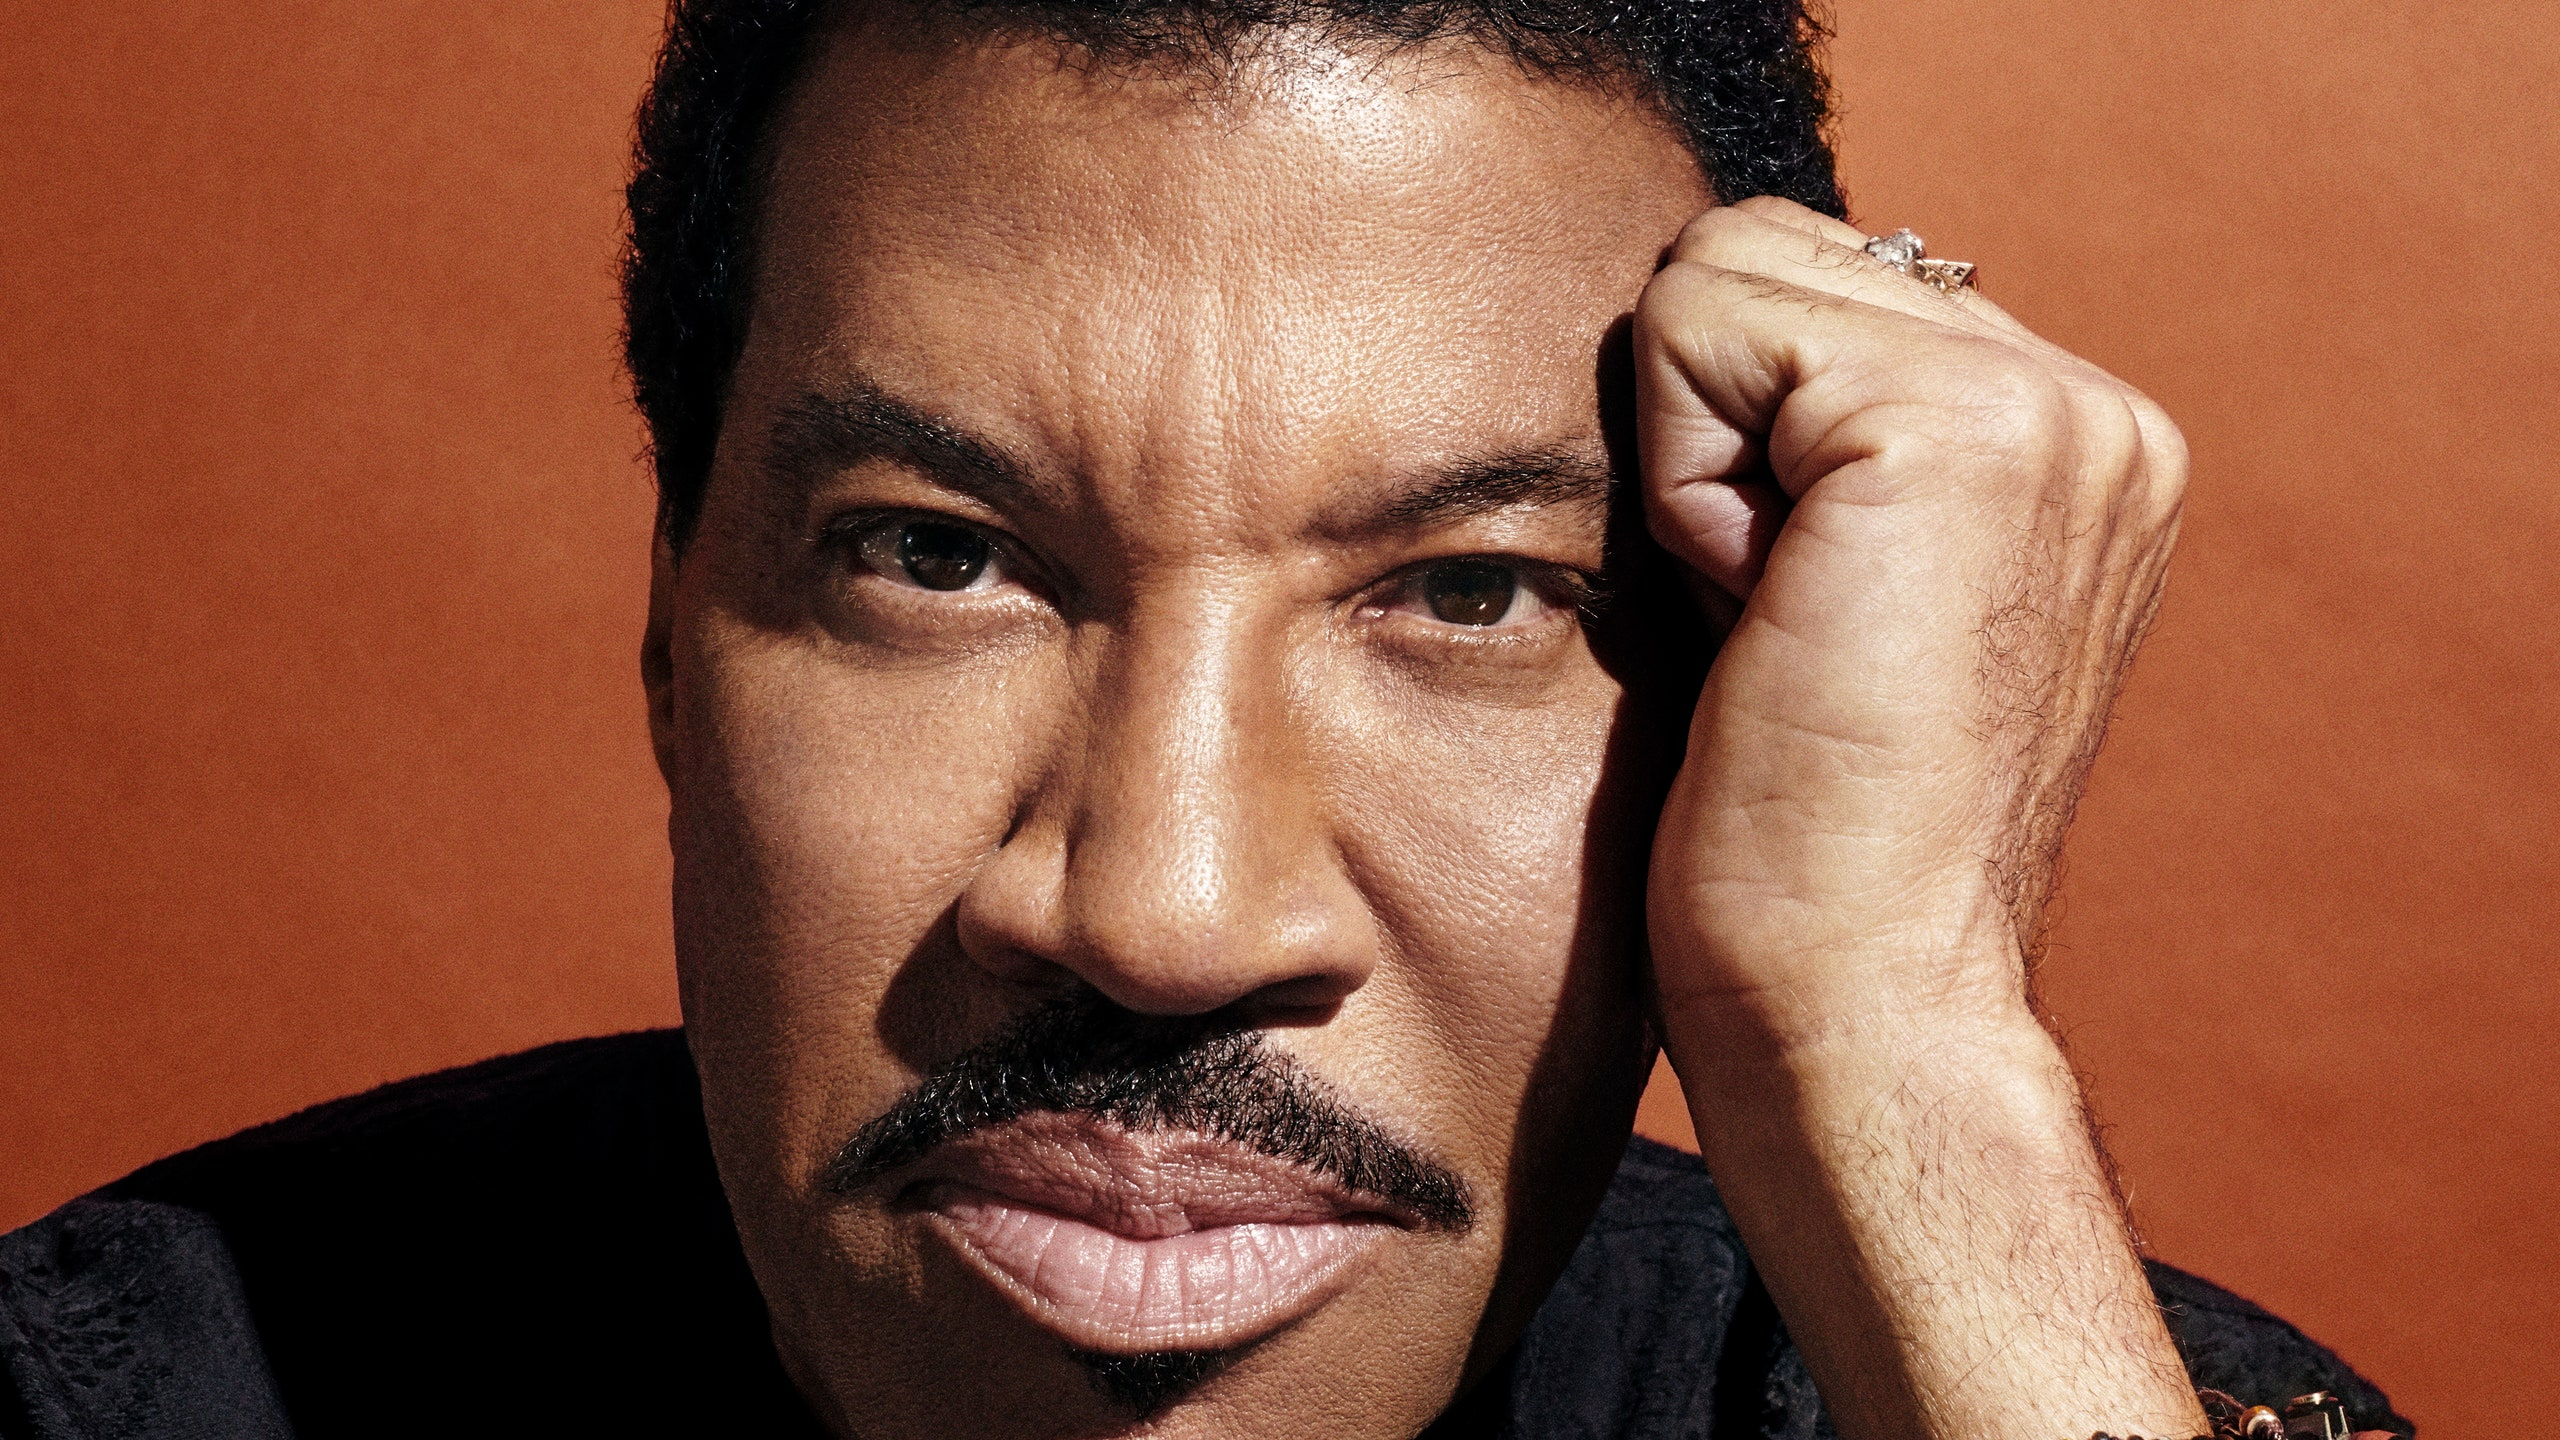 Lionel Richie Net Worth, Kids, Bio, Wife, Age, Career, & More